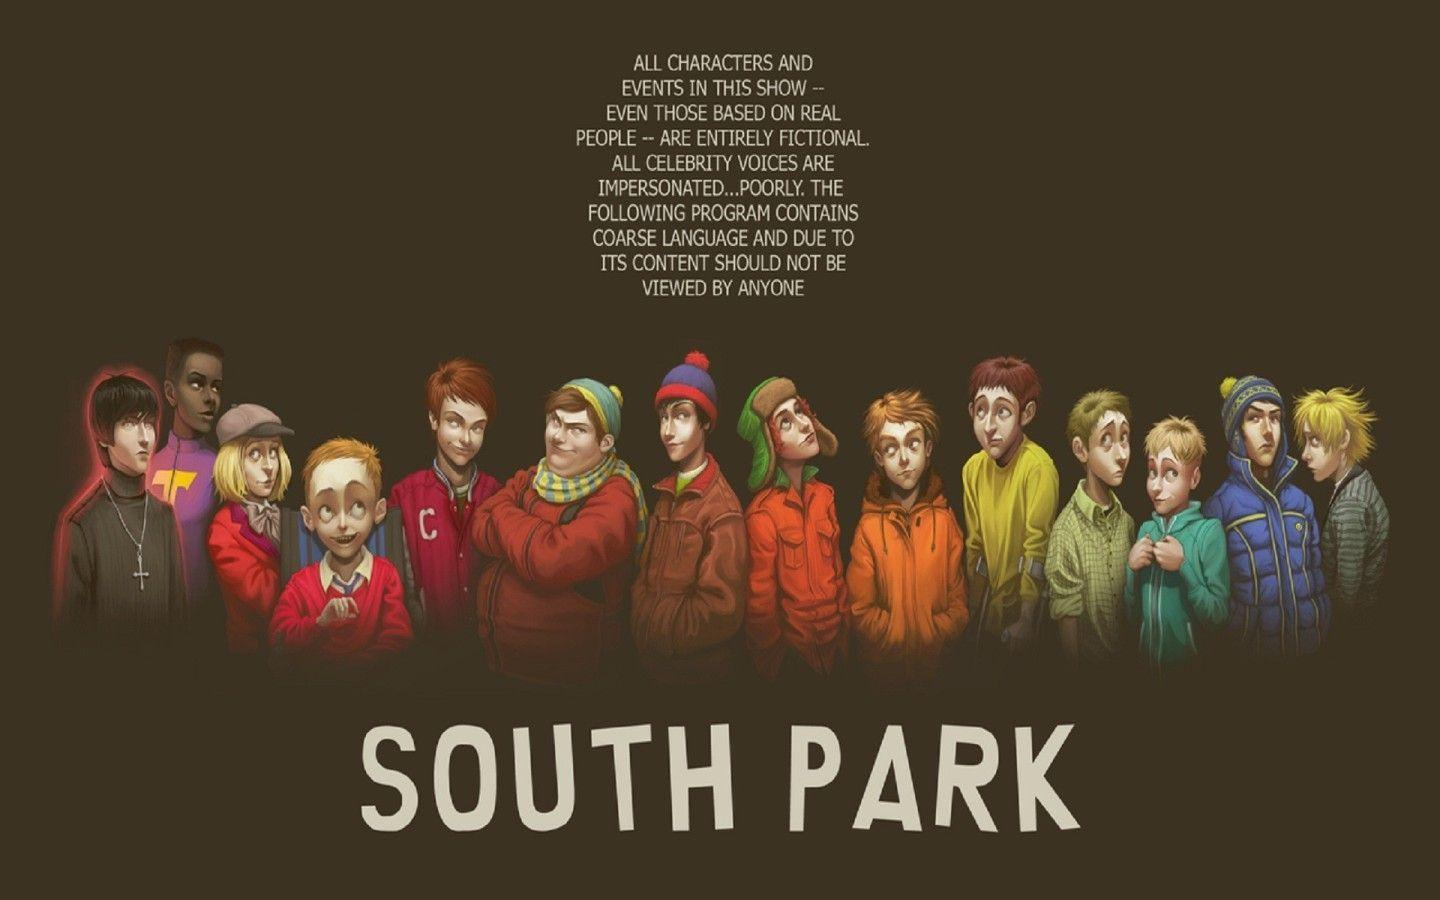 Funny South Park Wallpapers Hd Images & Pictures - Becuo